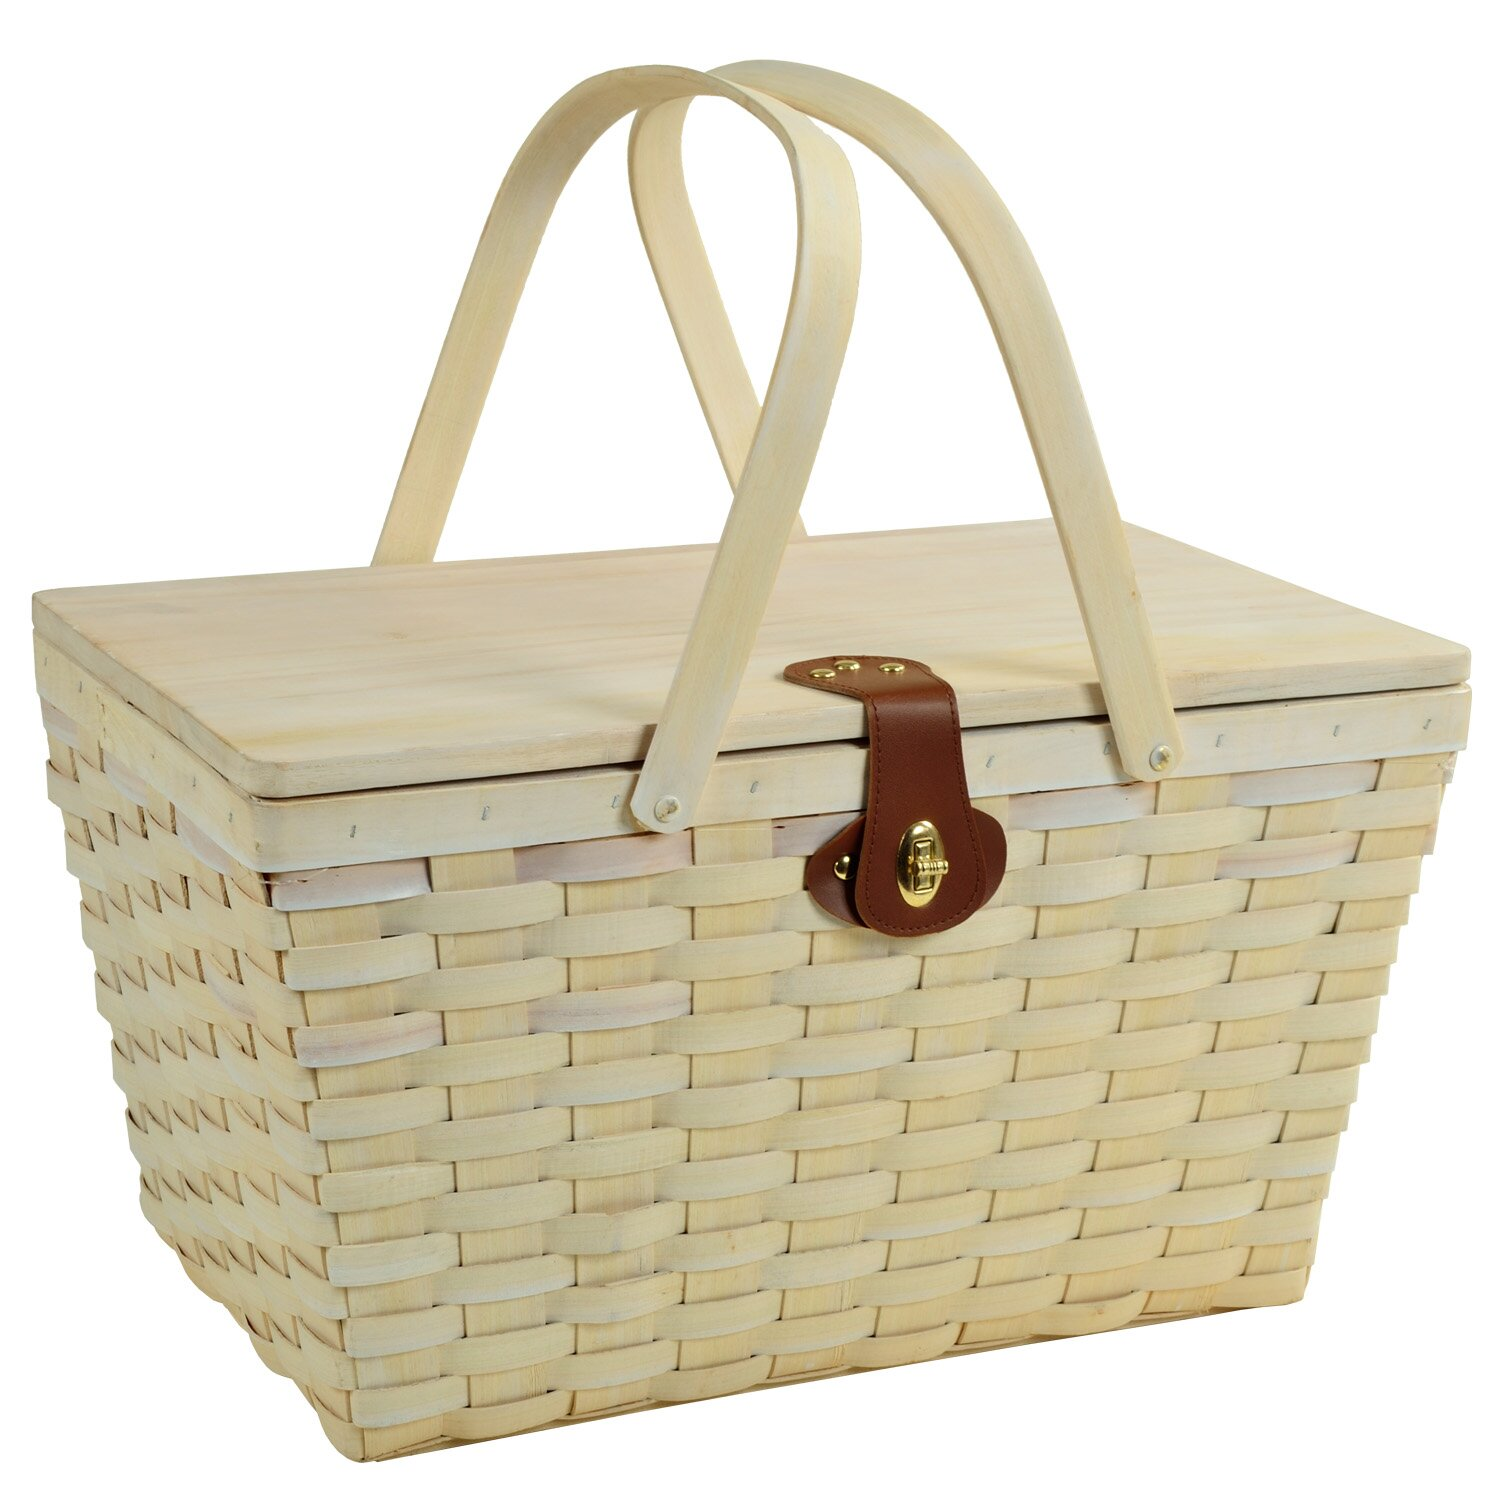 Amberley Ascot 4 Person Picnic Basket : Picnic at ascot settler person basket wayfair